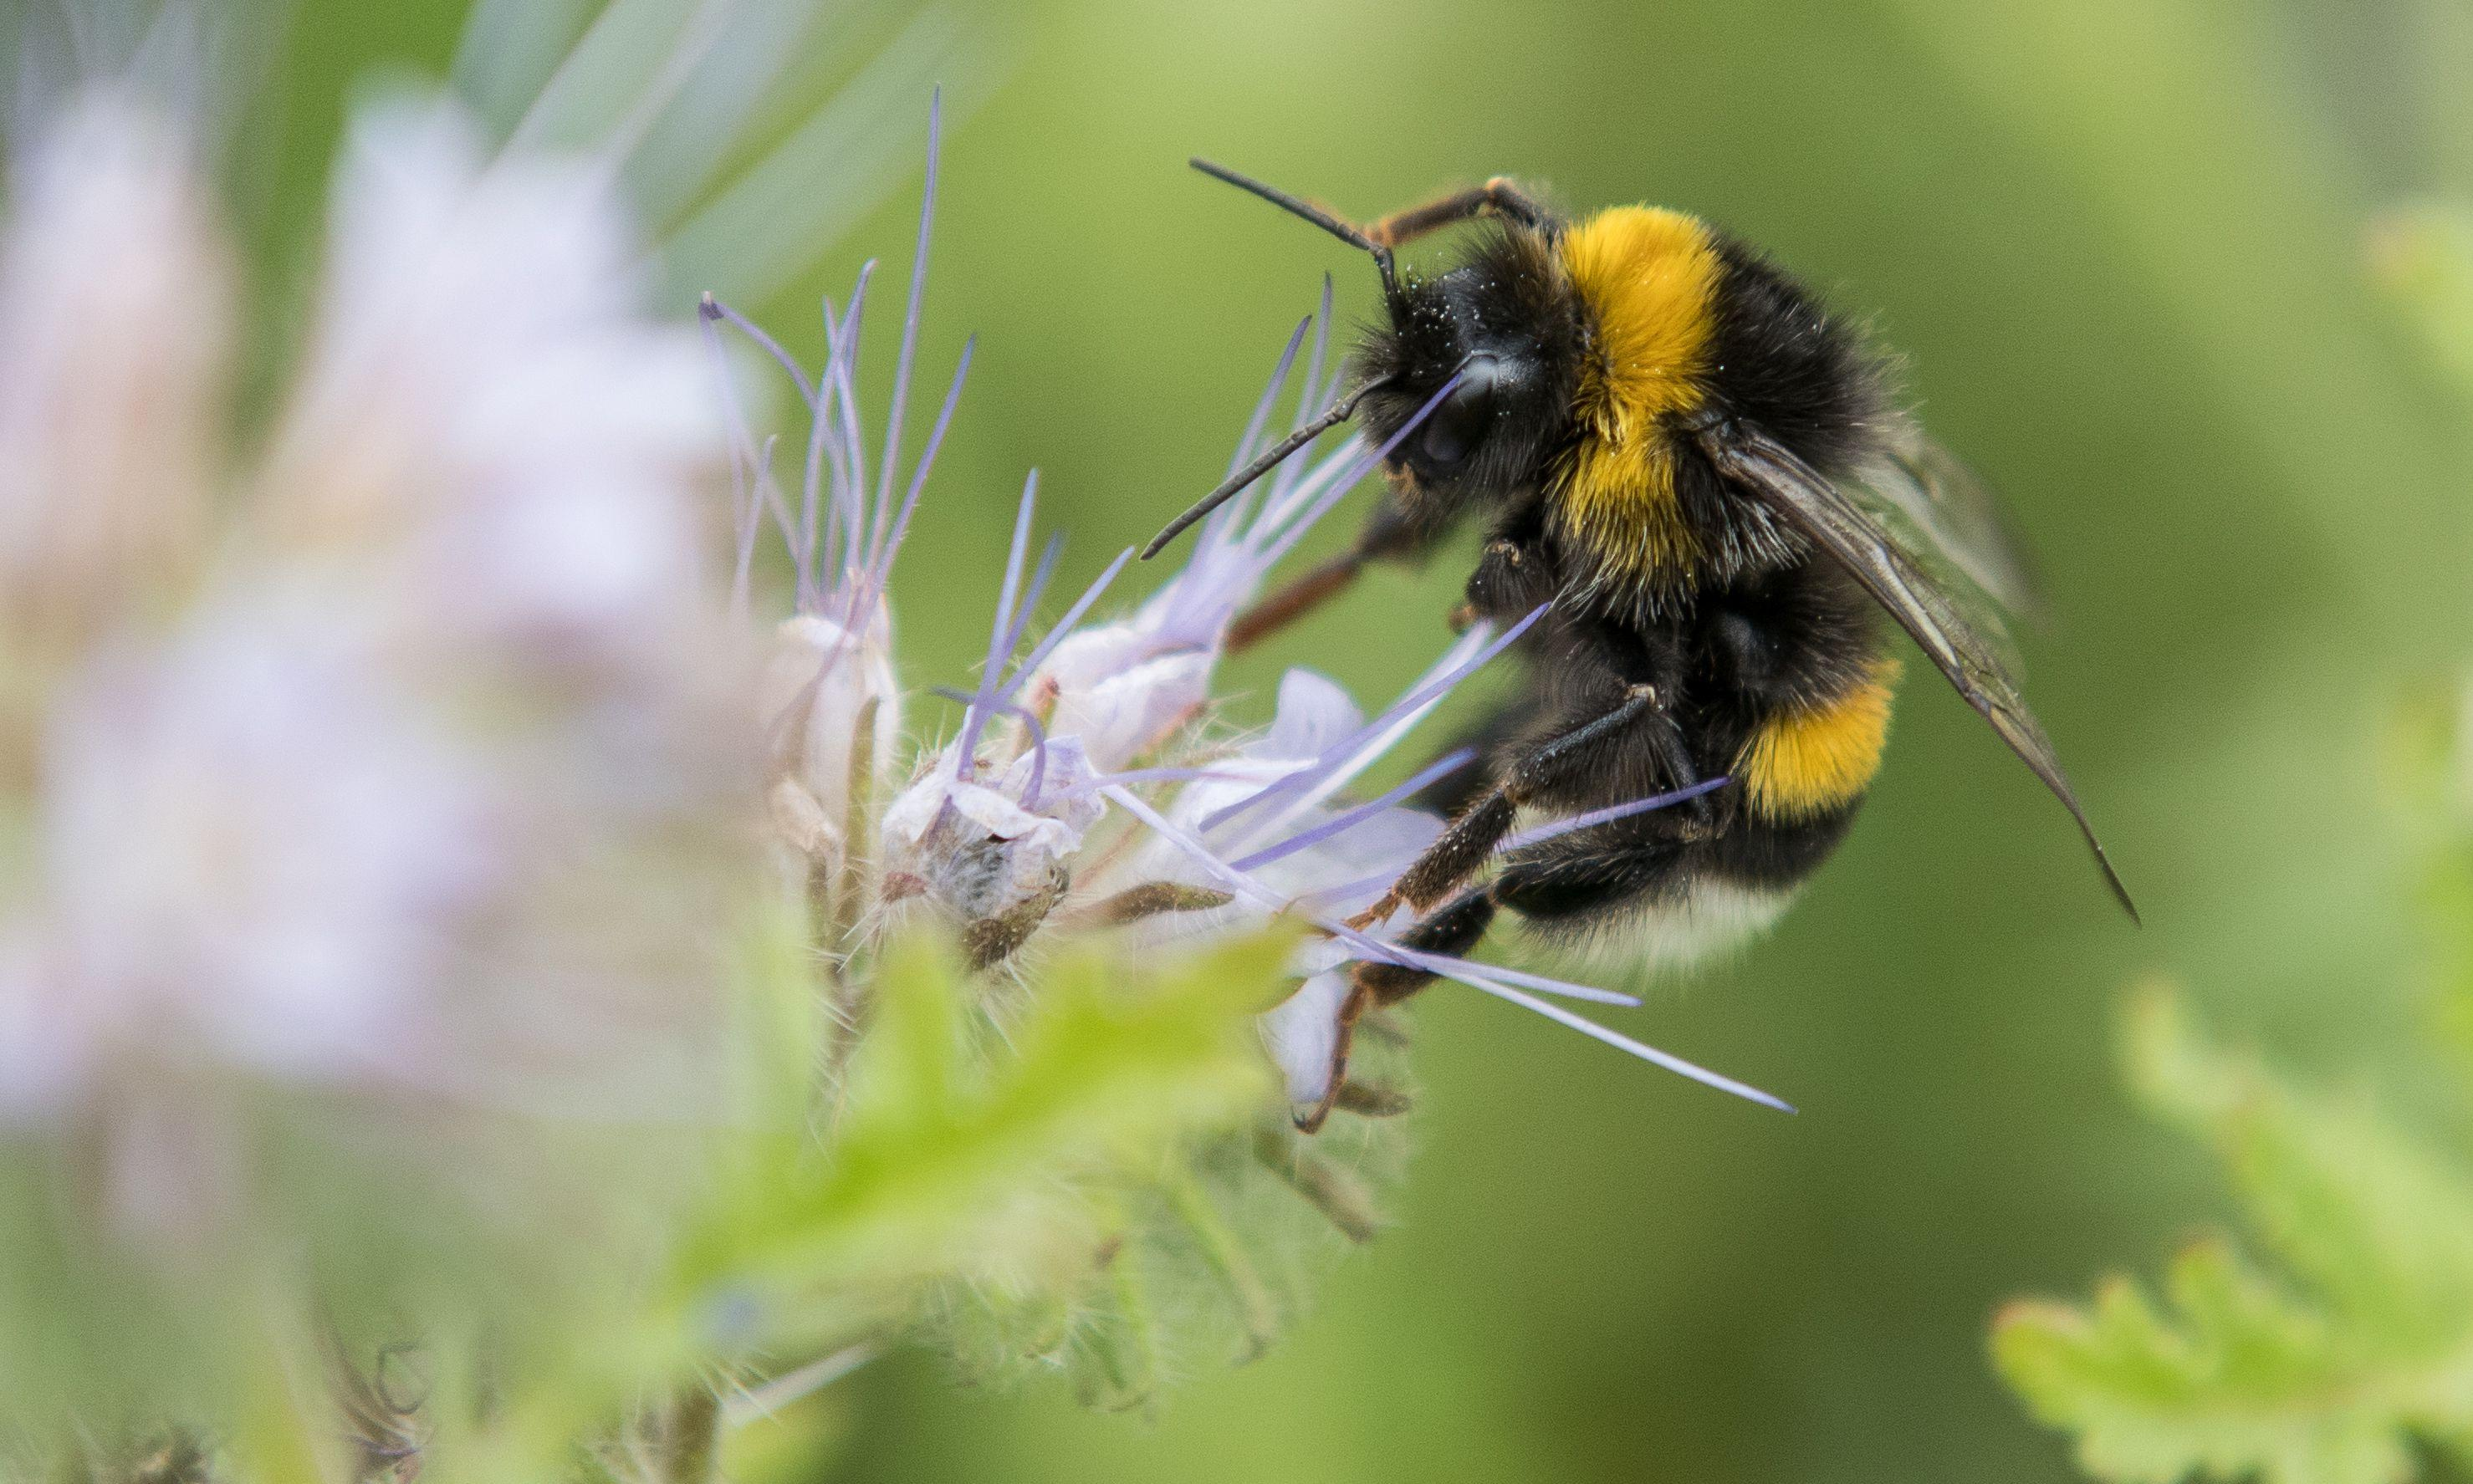 Developers may have to enhance wildlife habitats, says Gove